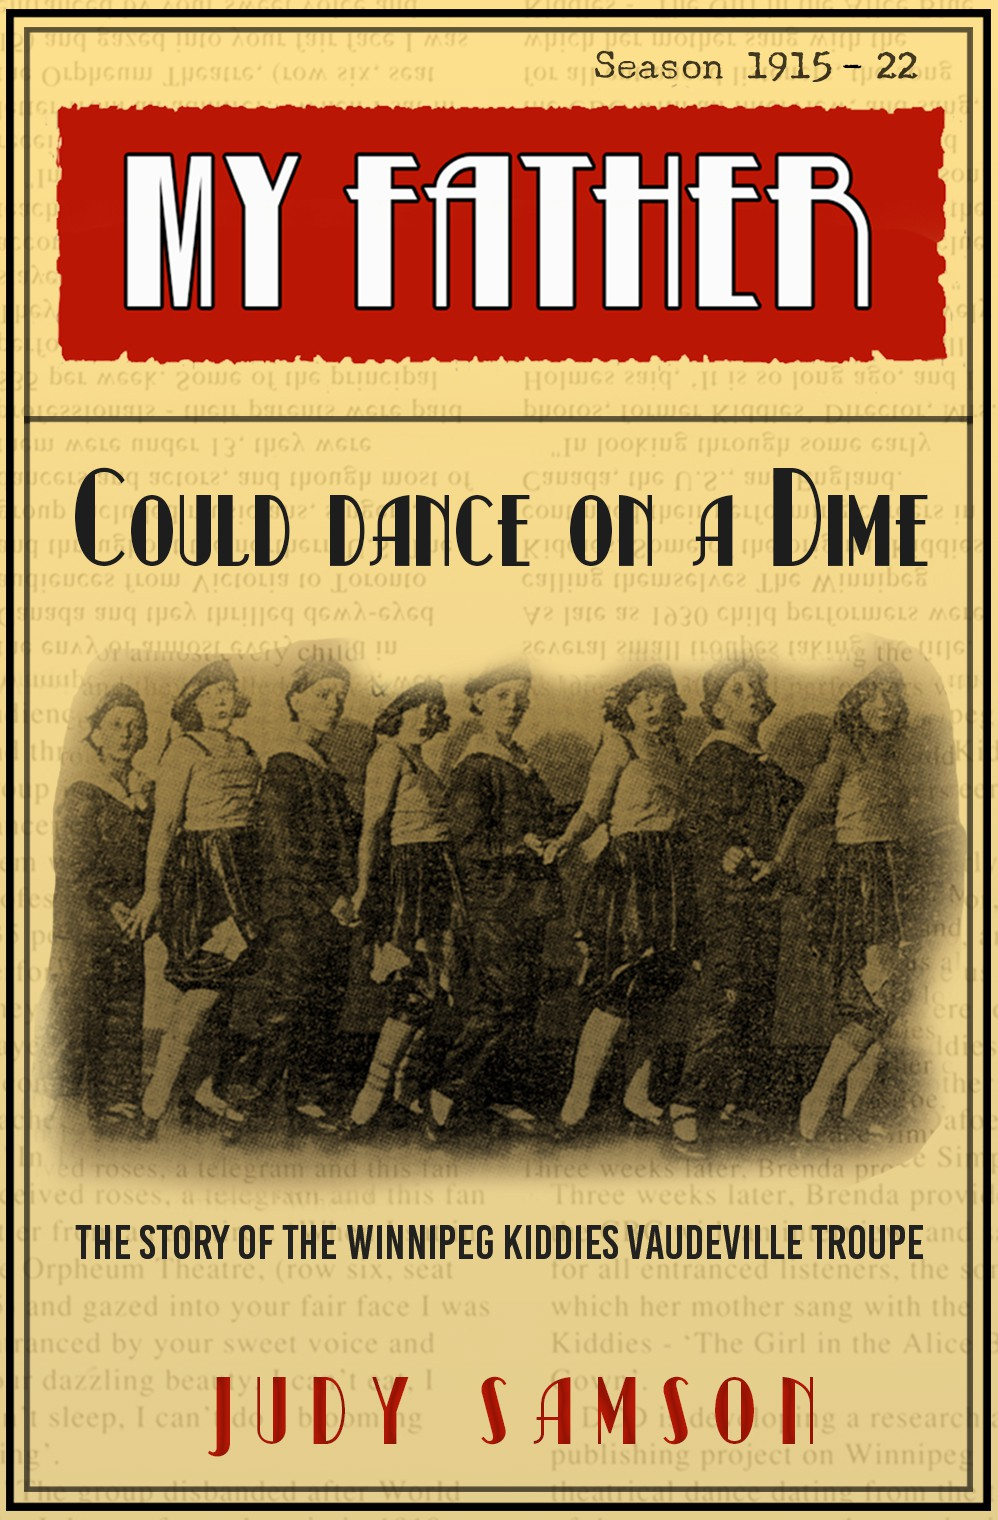 Create an eye-catching book cover that captures in a modern way the vintage vibe of 20's vaudeville